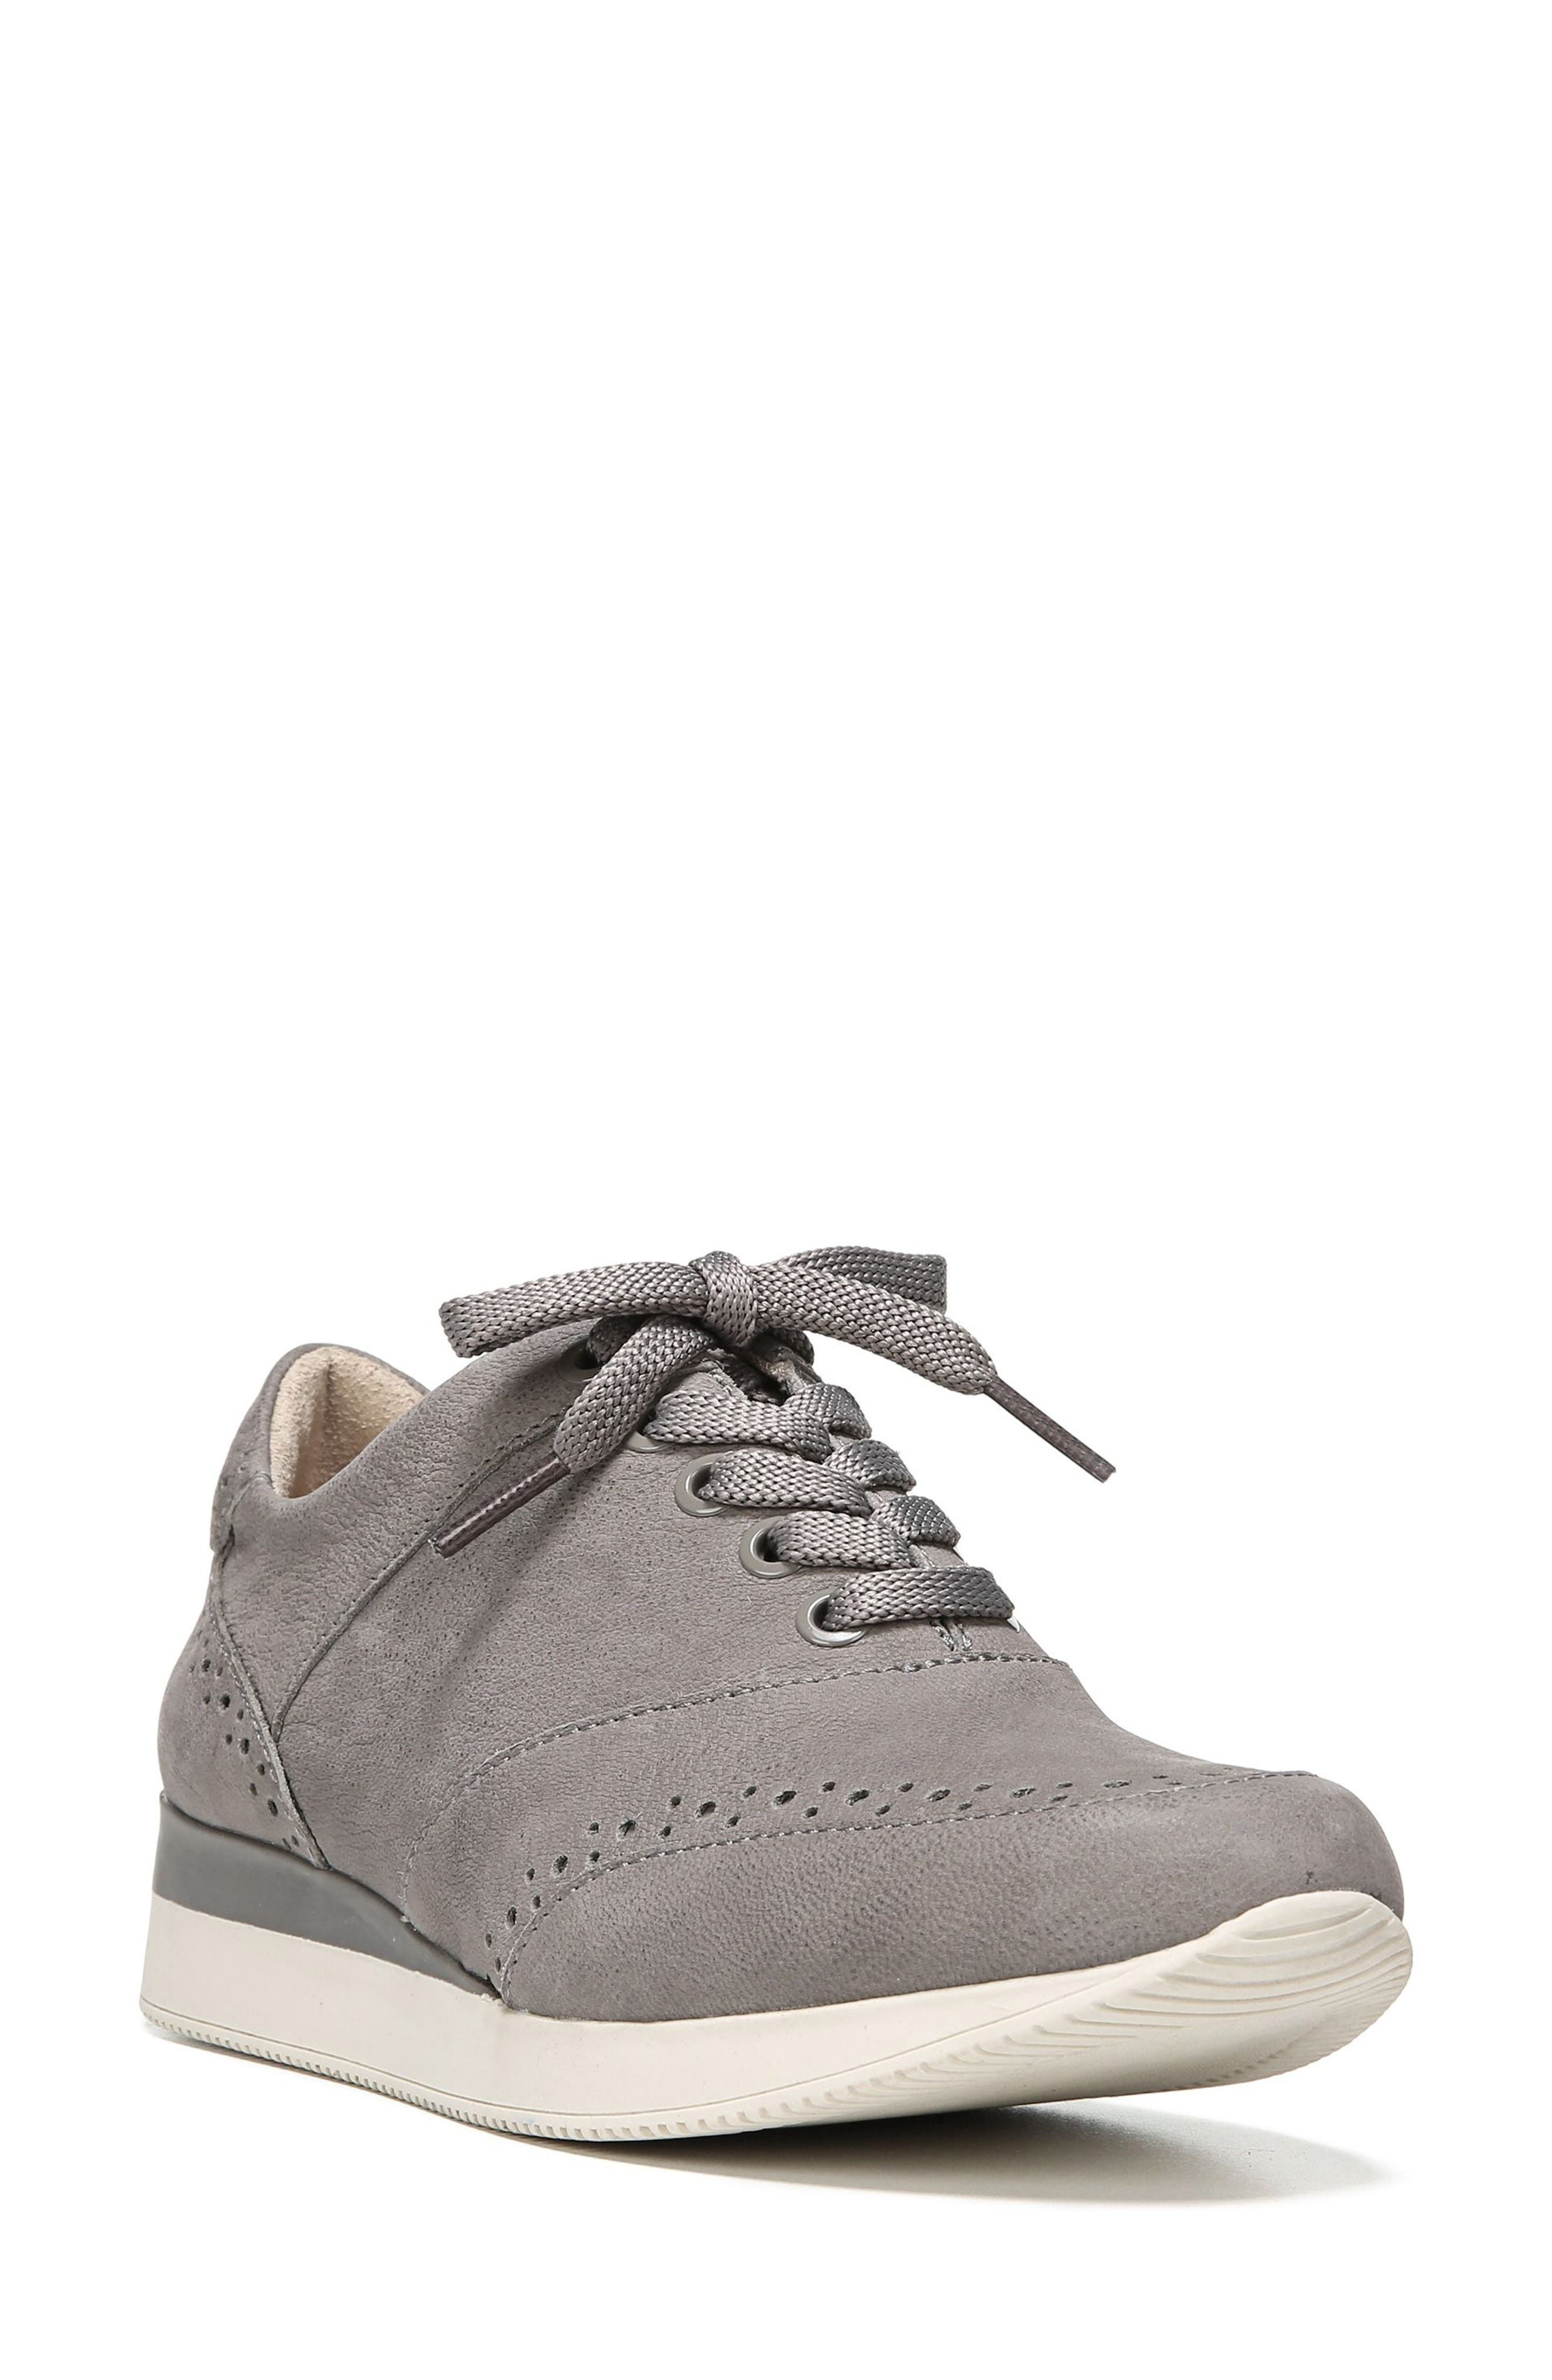 Jimi 2 Perforated Sneaker,                             Main thumbnail 1, color,                             Modern Grey Nubuck Leather